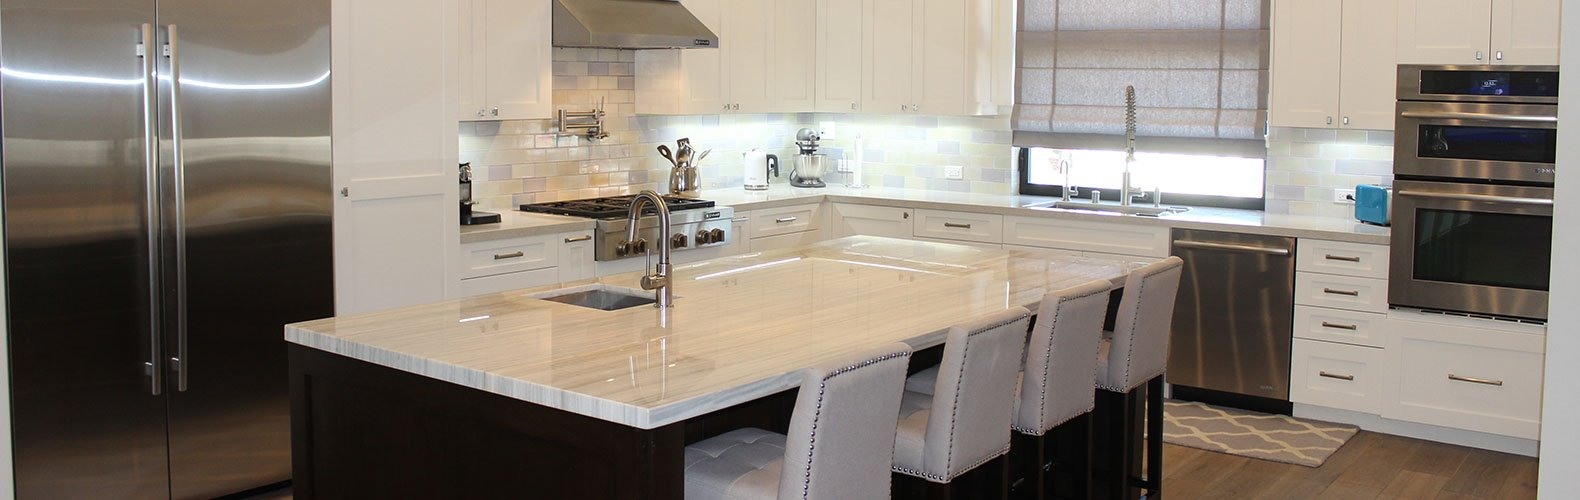 Kitchen remodeling in los angeles ca precise home builders for Home renovation los angeles